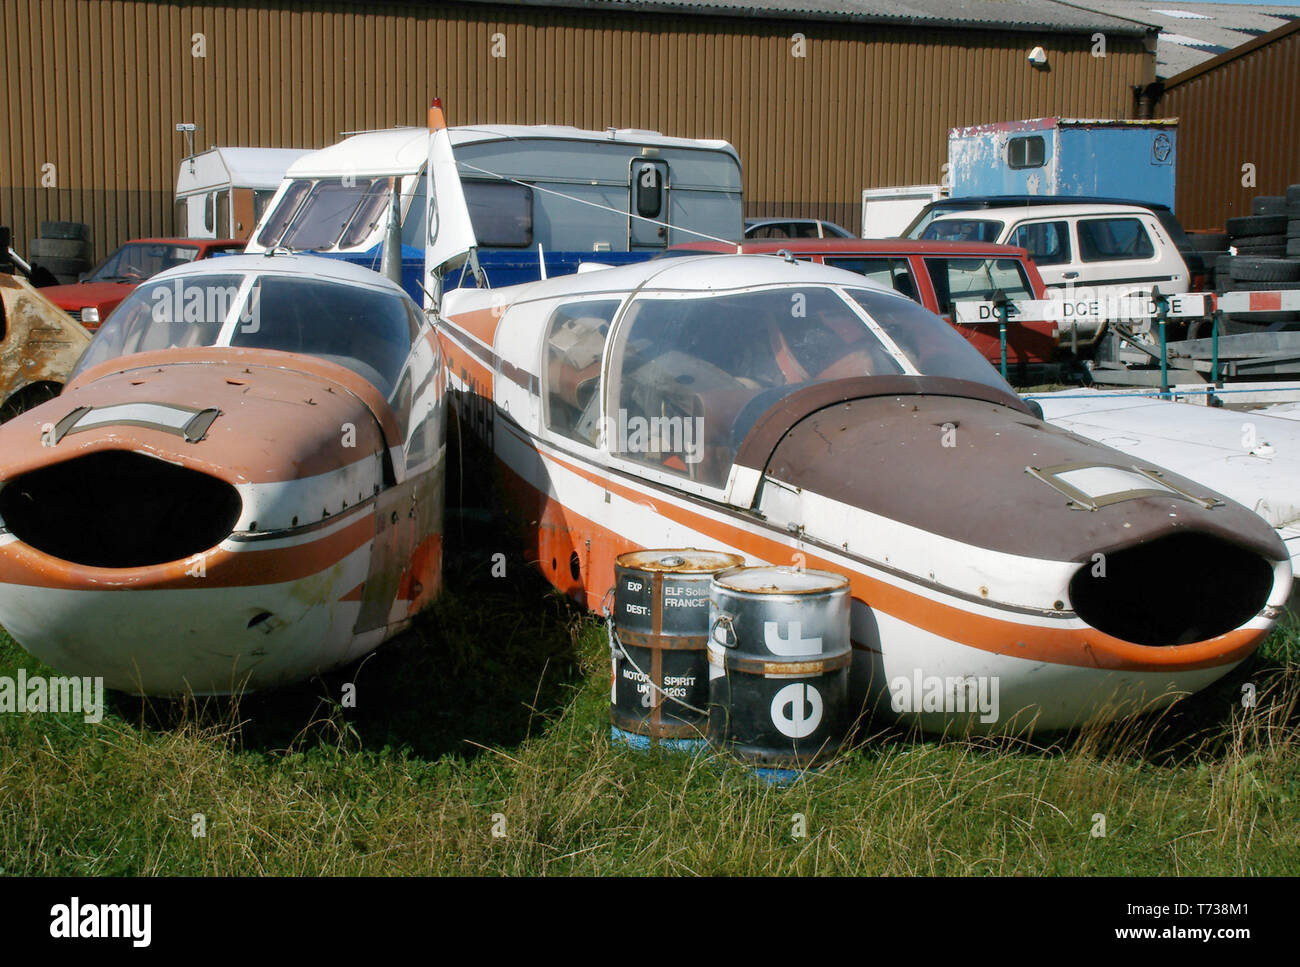 A storage or dumping area at Turweston Aerodrome, Buckinghamshire, UK with two Robin HR100 planes, elf oil drums, cars and caravans. Decaying - Stock Image